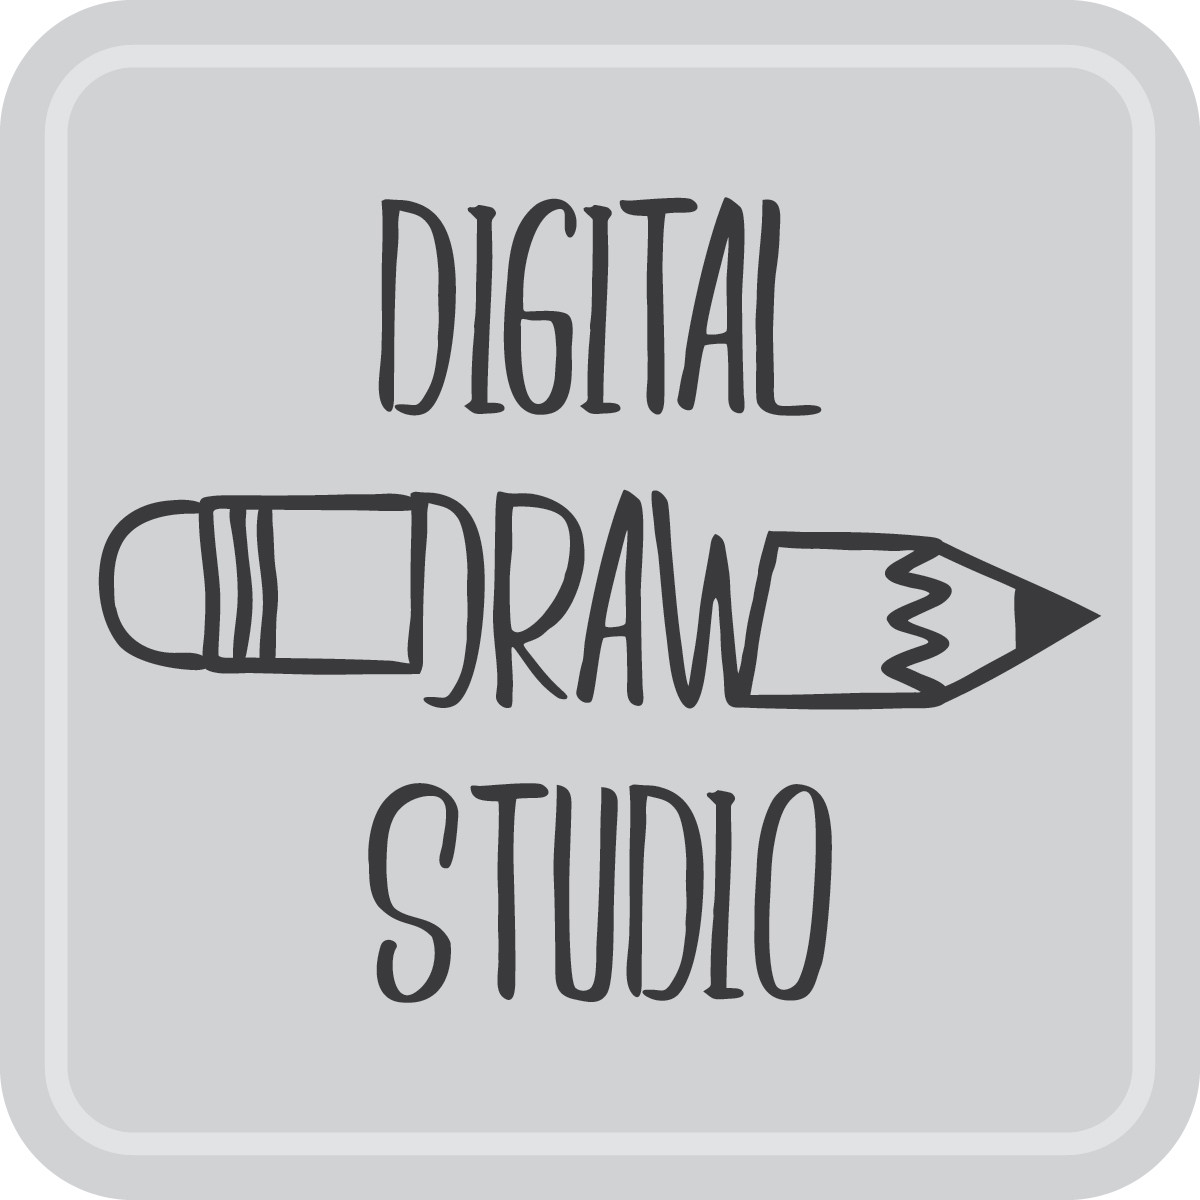 Digital_Draw_Studio's profile picture